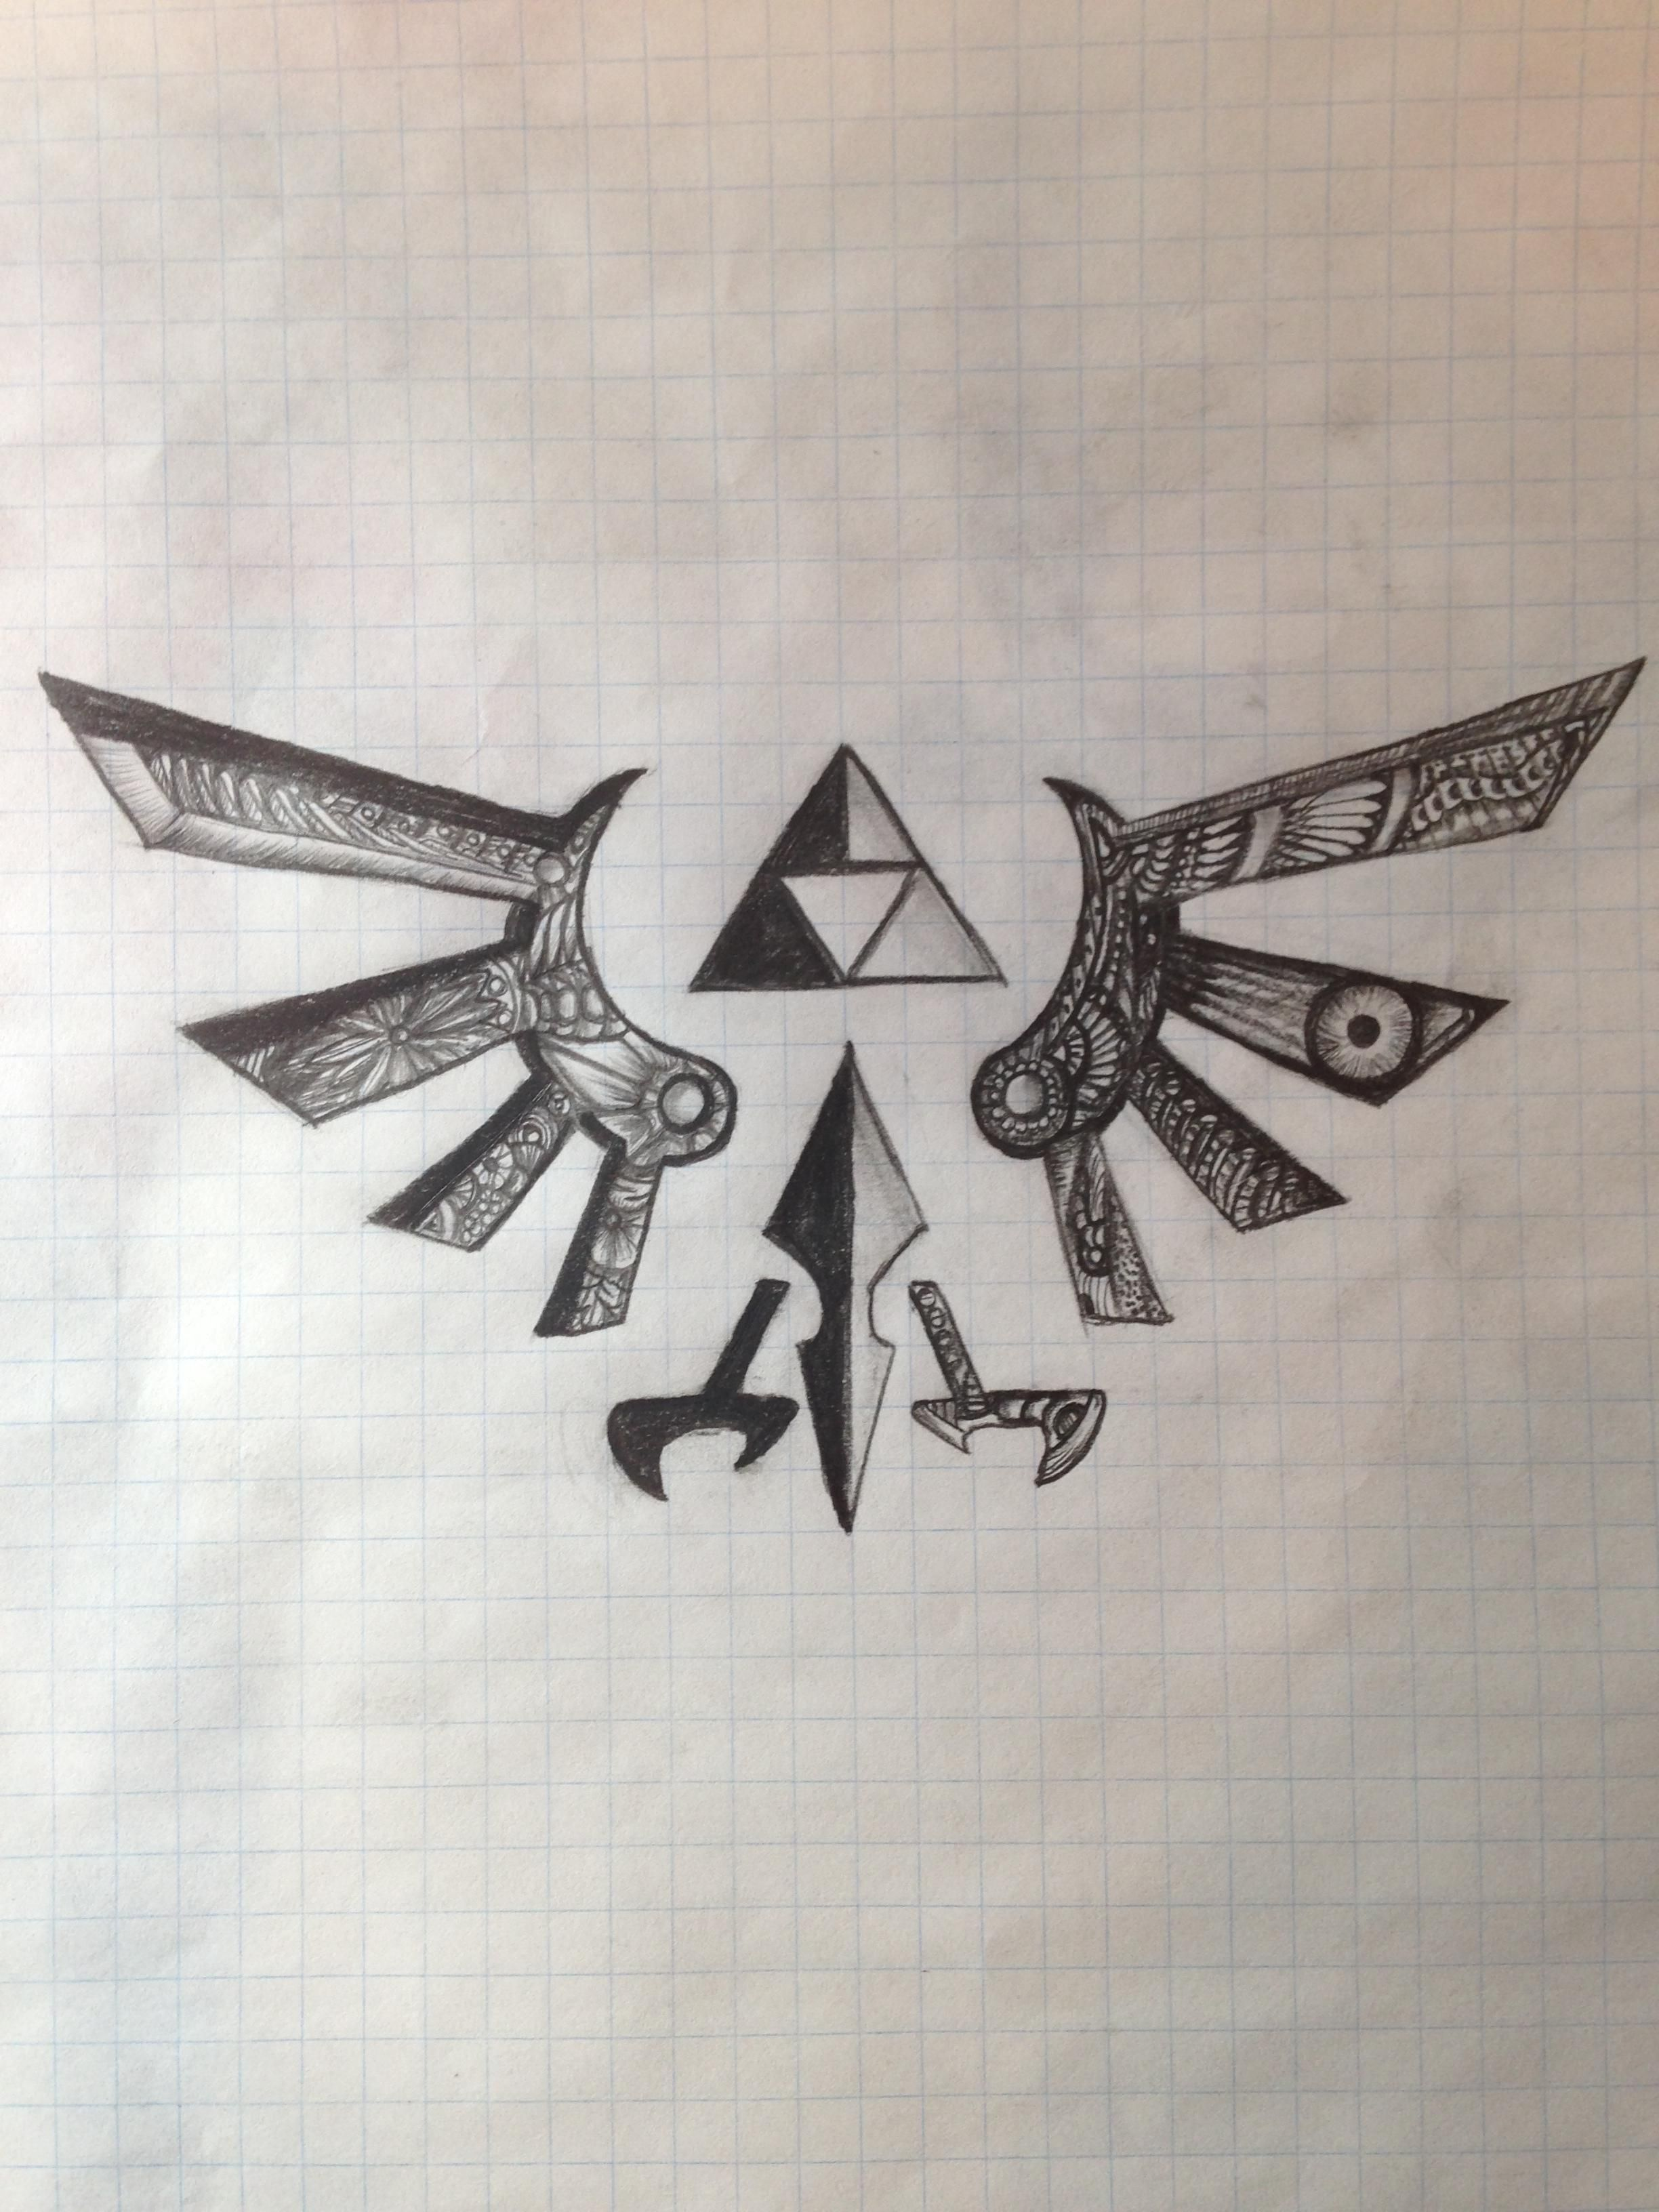 triforce drawing via reddit user sirgrapes video game